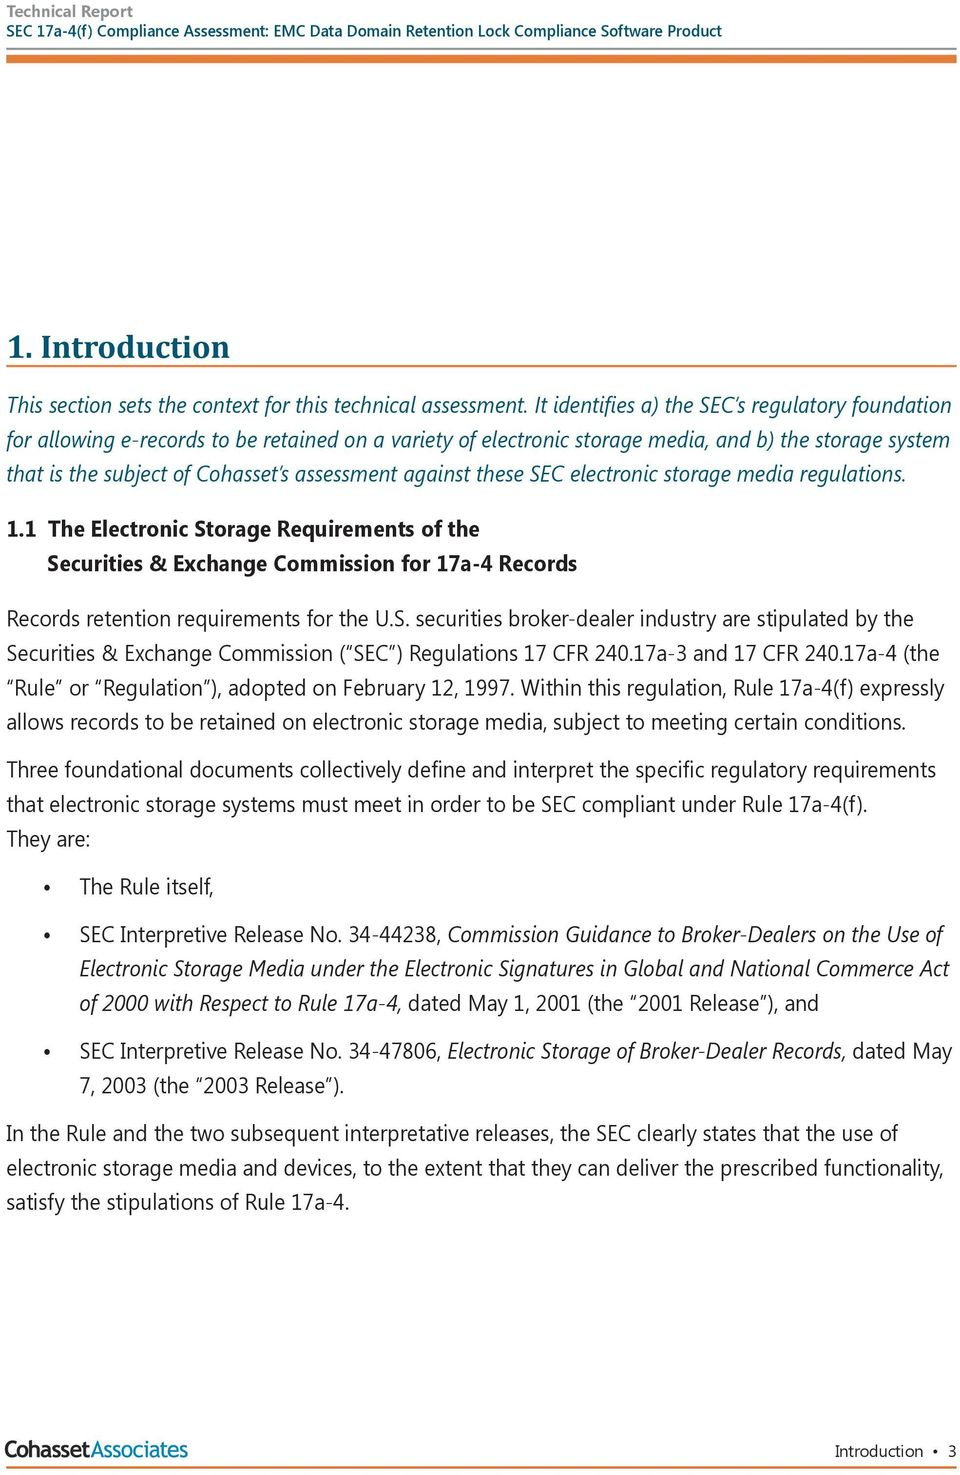 against these SEC electronic storage media regulations. 1.1 The Electronic Storage Requirements of the Securities & Exchange Commission for 17a-4 Records Records retention requirements for the U.S. securities broker-dealer industry are stipulated by the Securities & Exchange Commission ( SEC ) Regulations 17 CFR 240.